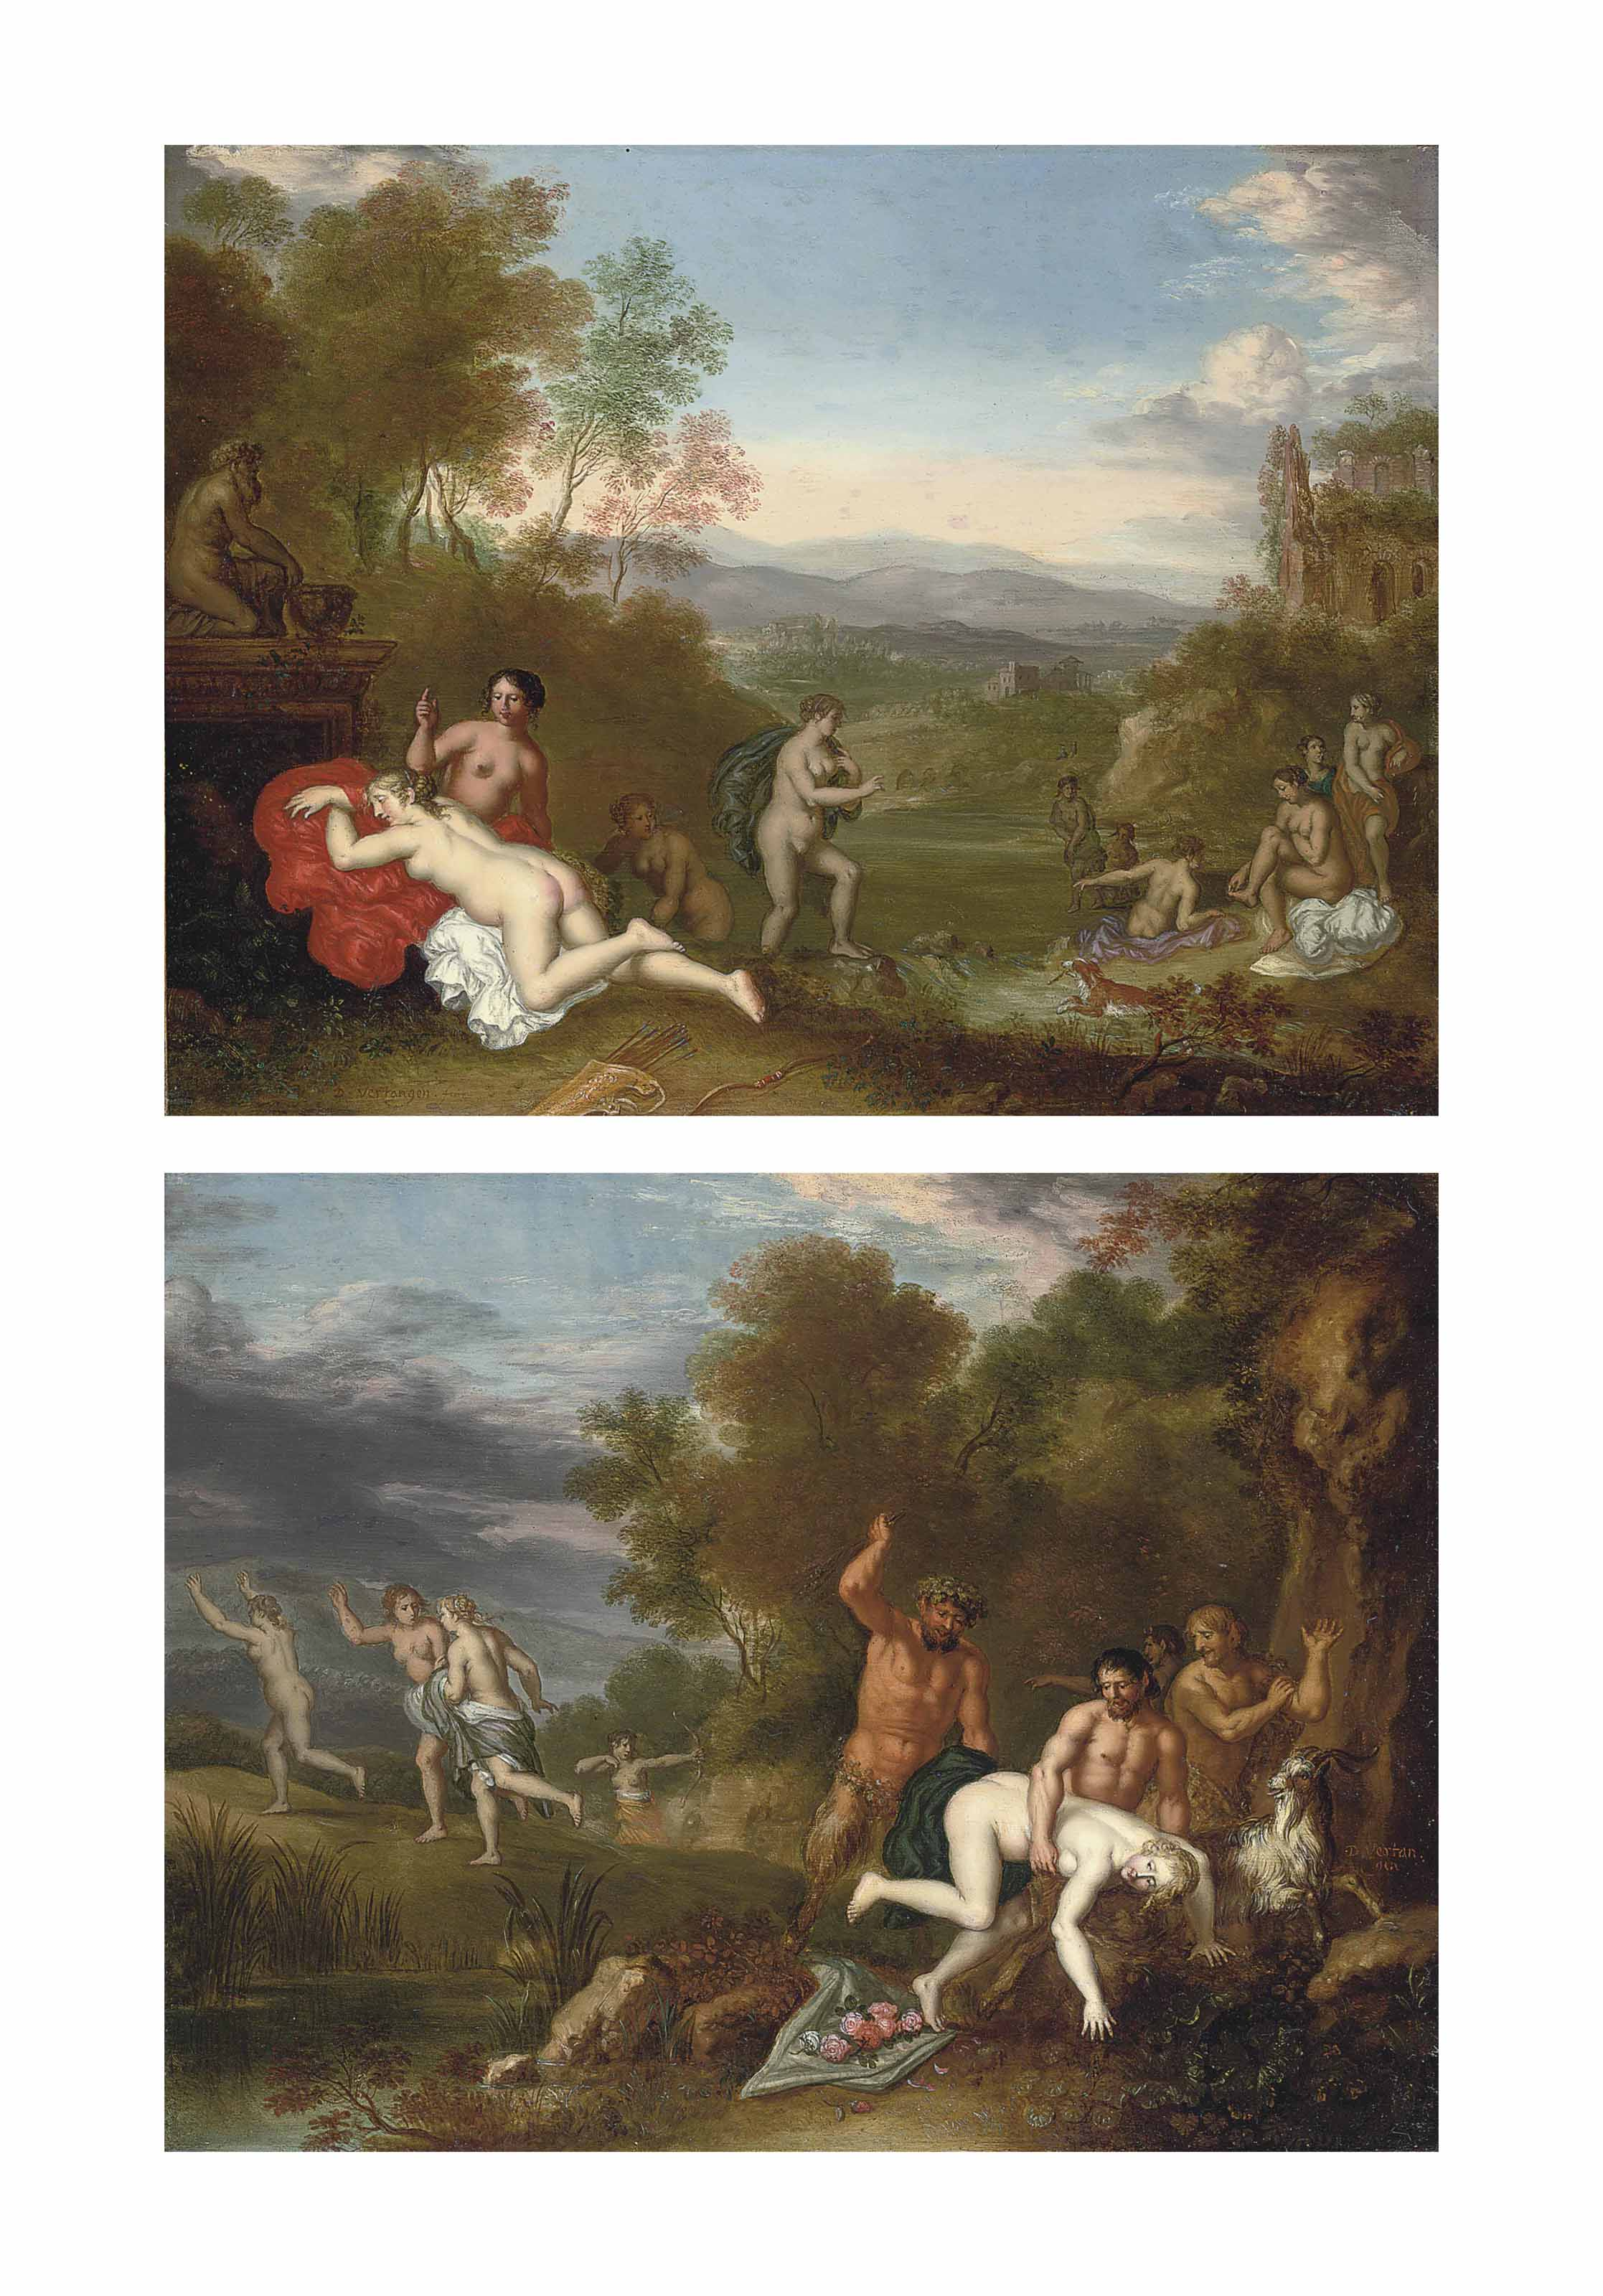 A wooded river landscape with Diana and her nymphs bathing; and A wooded river landscape with a nymph being chastened by a satyr